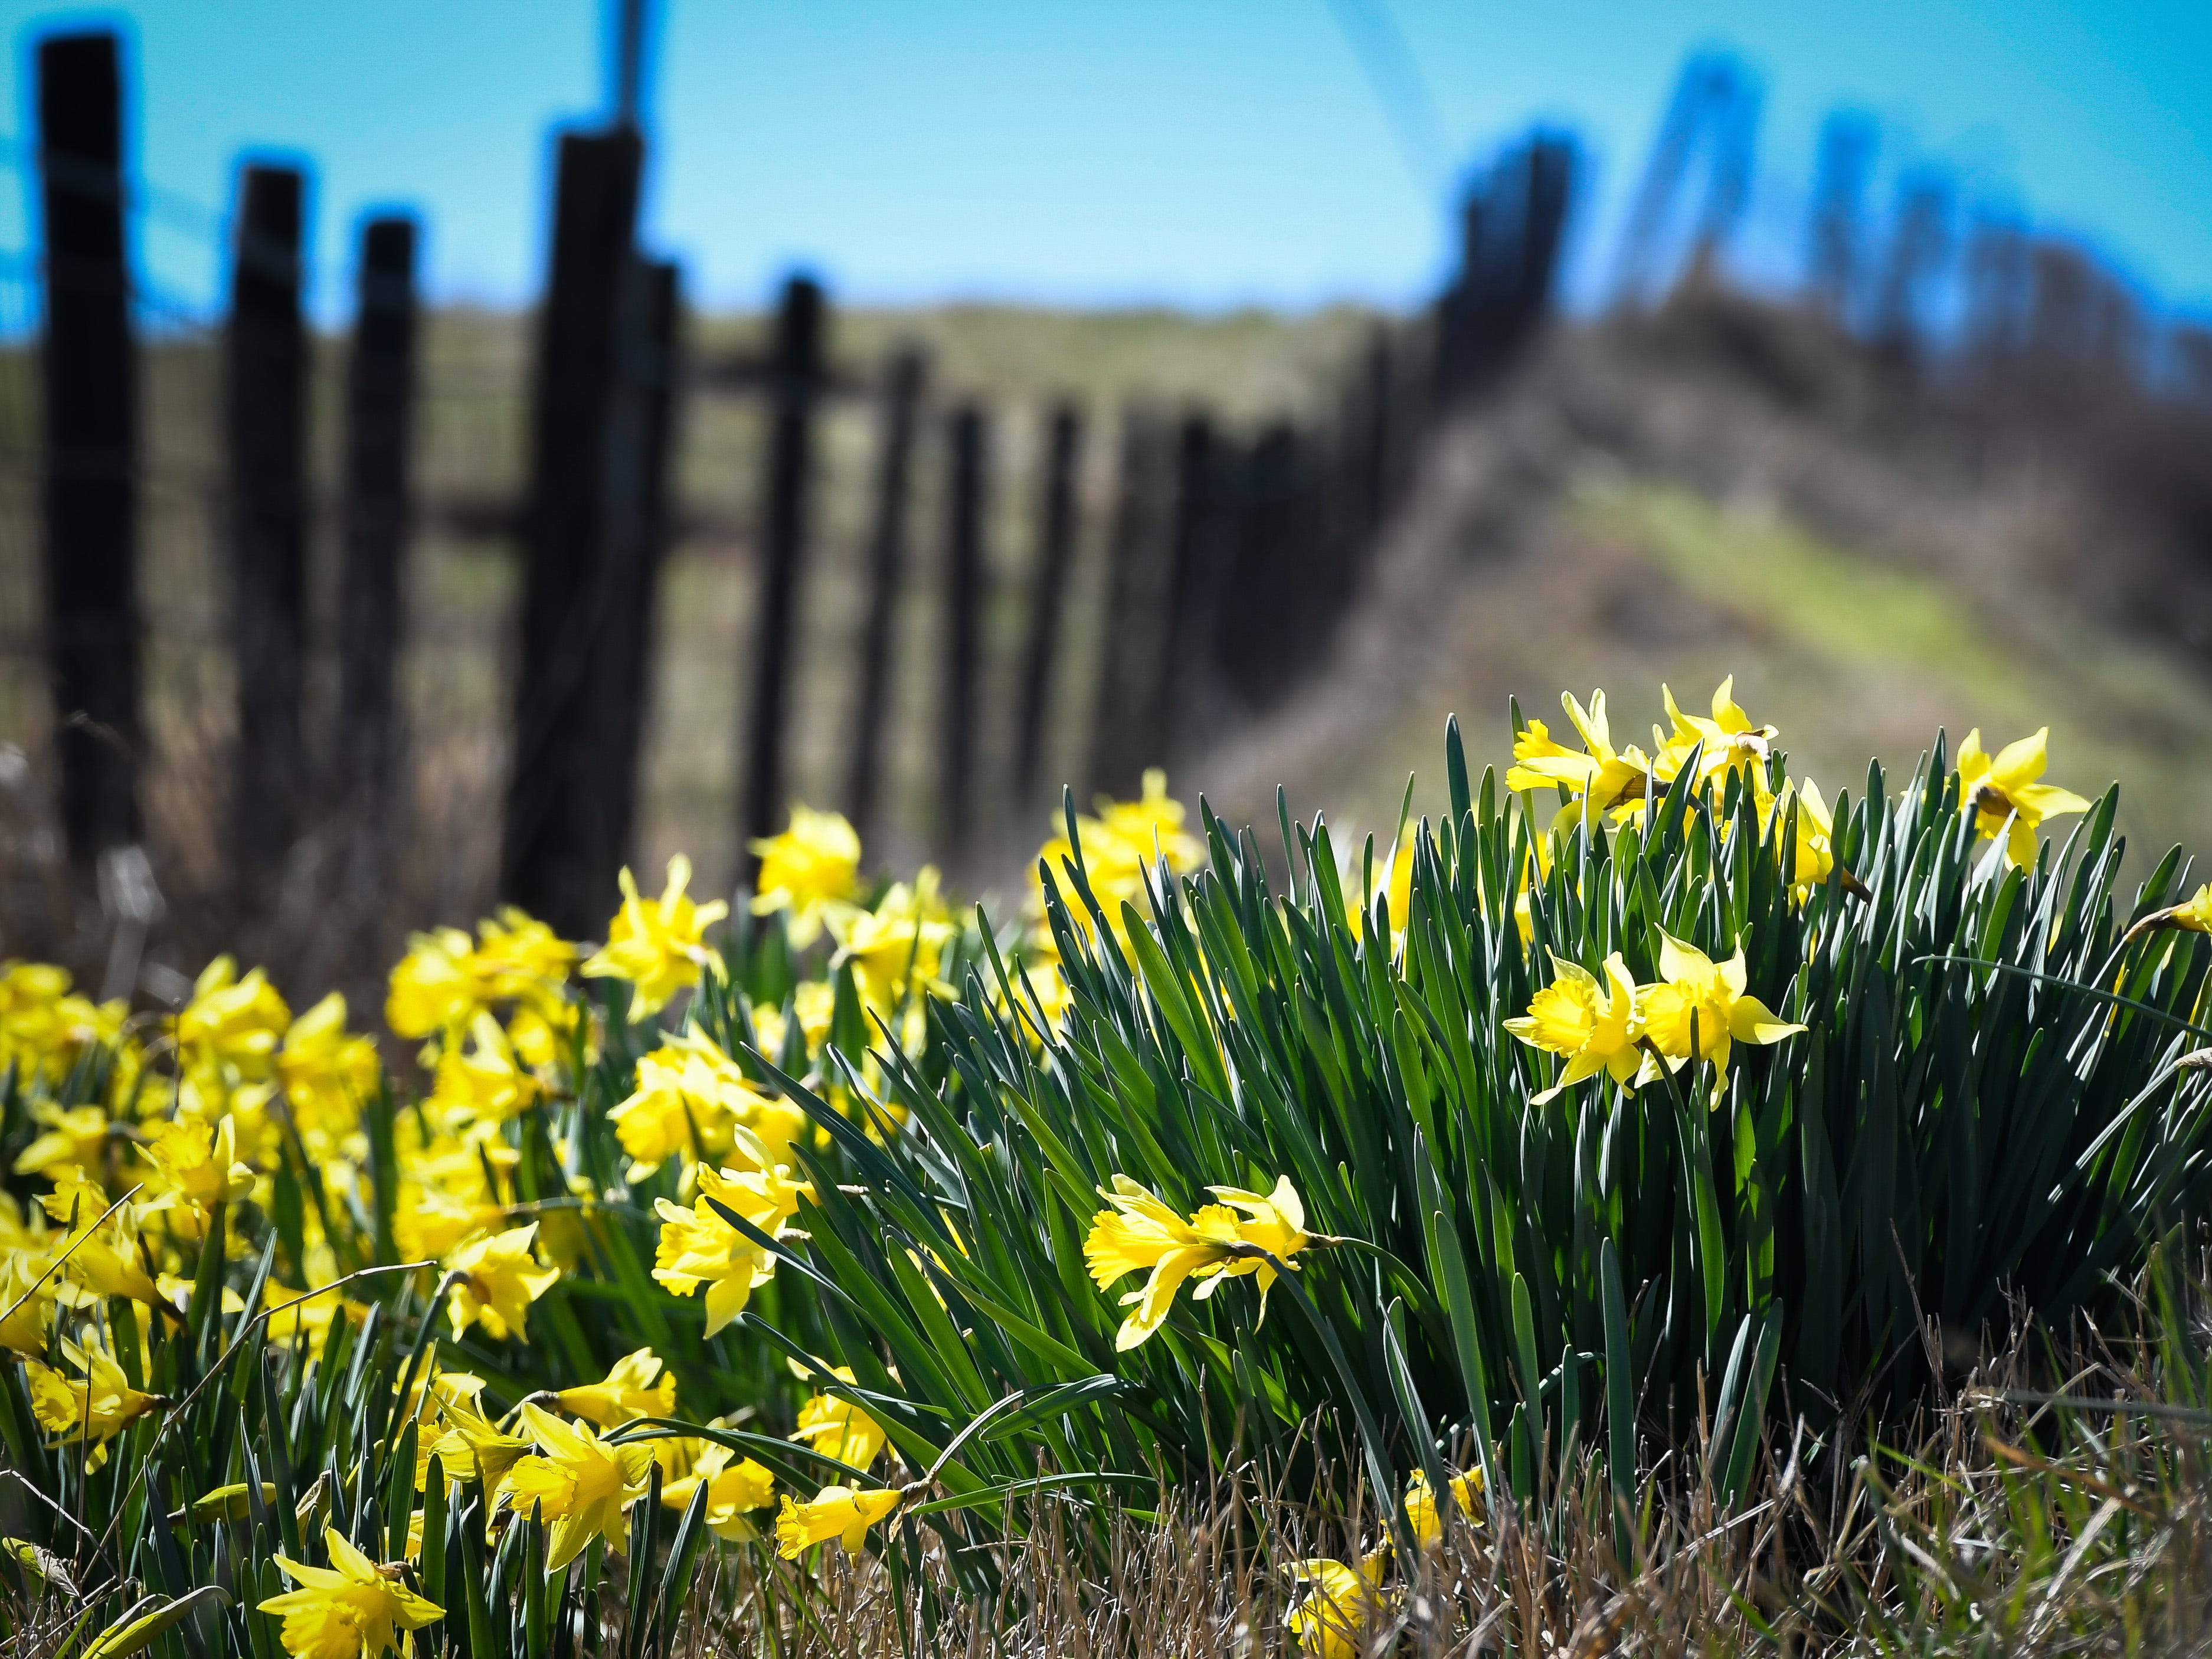 A sure sign that spring is almost here, blooming daffodils along country roads, in this case Hwy 812 in Henderson County Tuesday, March 26, 2019.